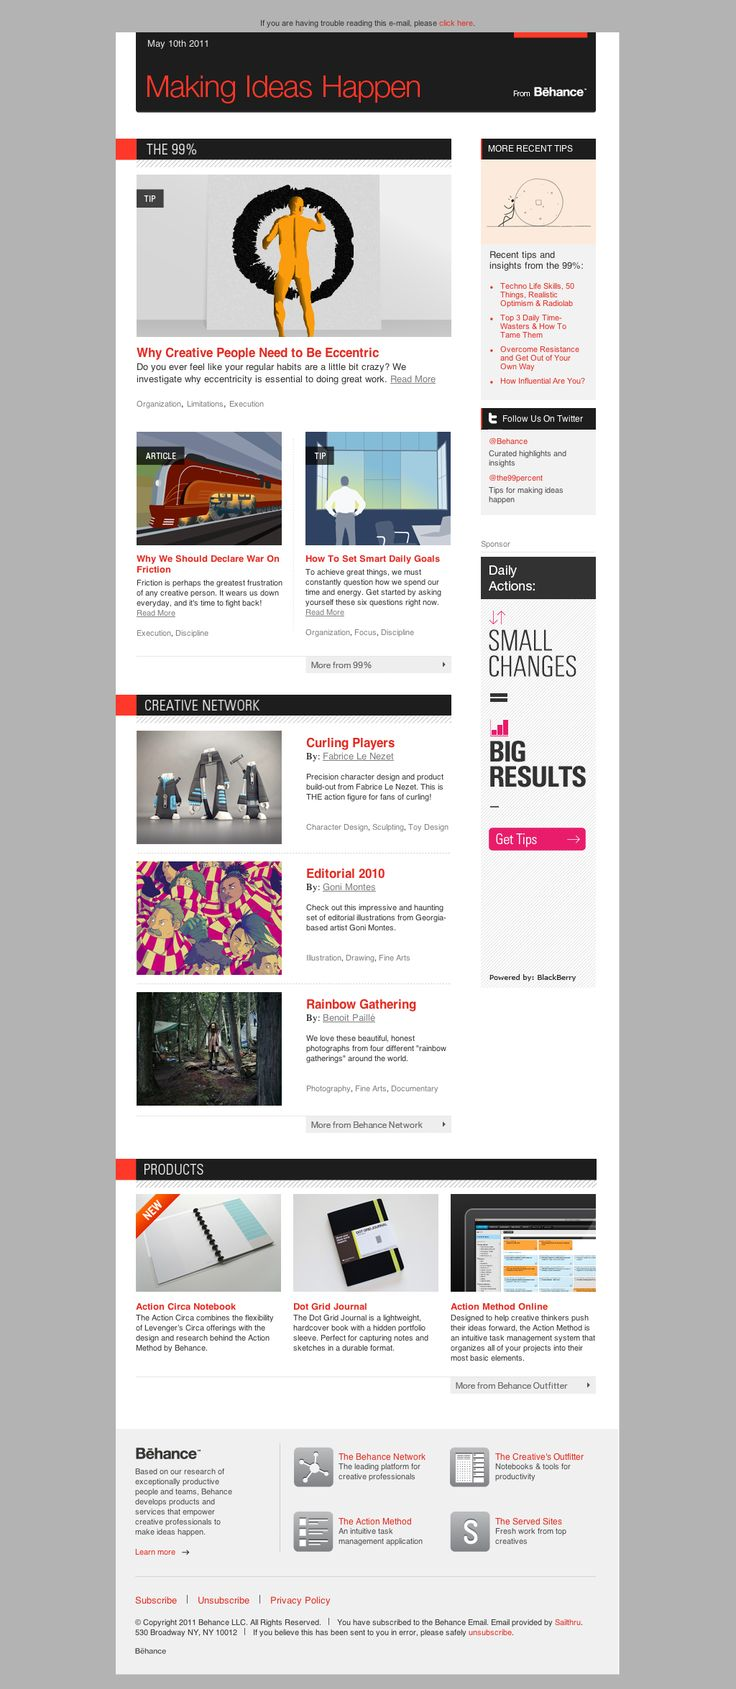 Behance 99%Email Database, Email Marketing, Email Software, Email Campaigns, Bulk Email, Email Inspiration, Email Design, Buy Email